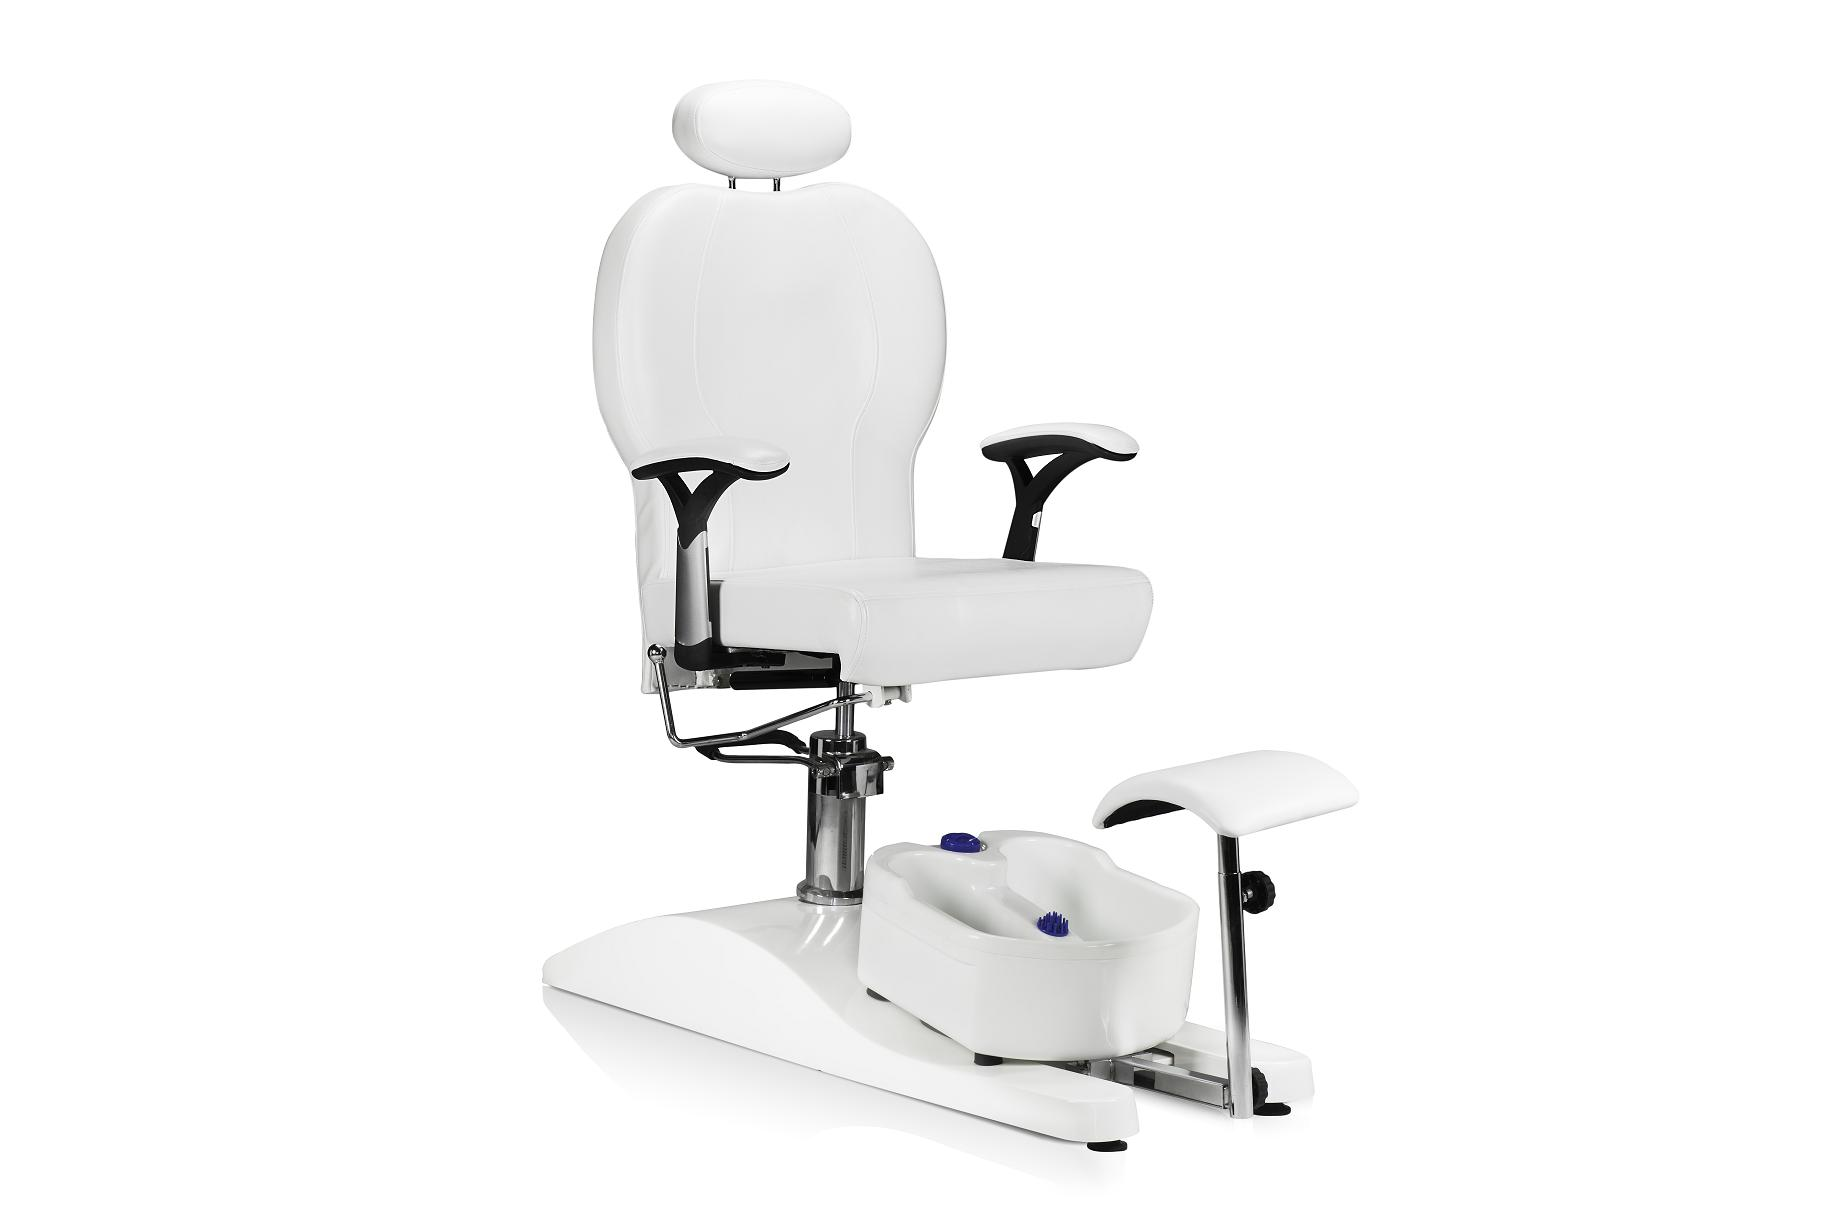 Pedicure chair dimensions - Pedicure Chair With Free Deluxe Foot Spa White